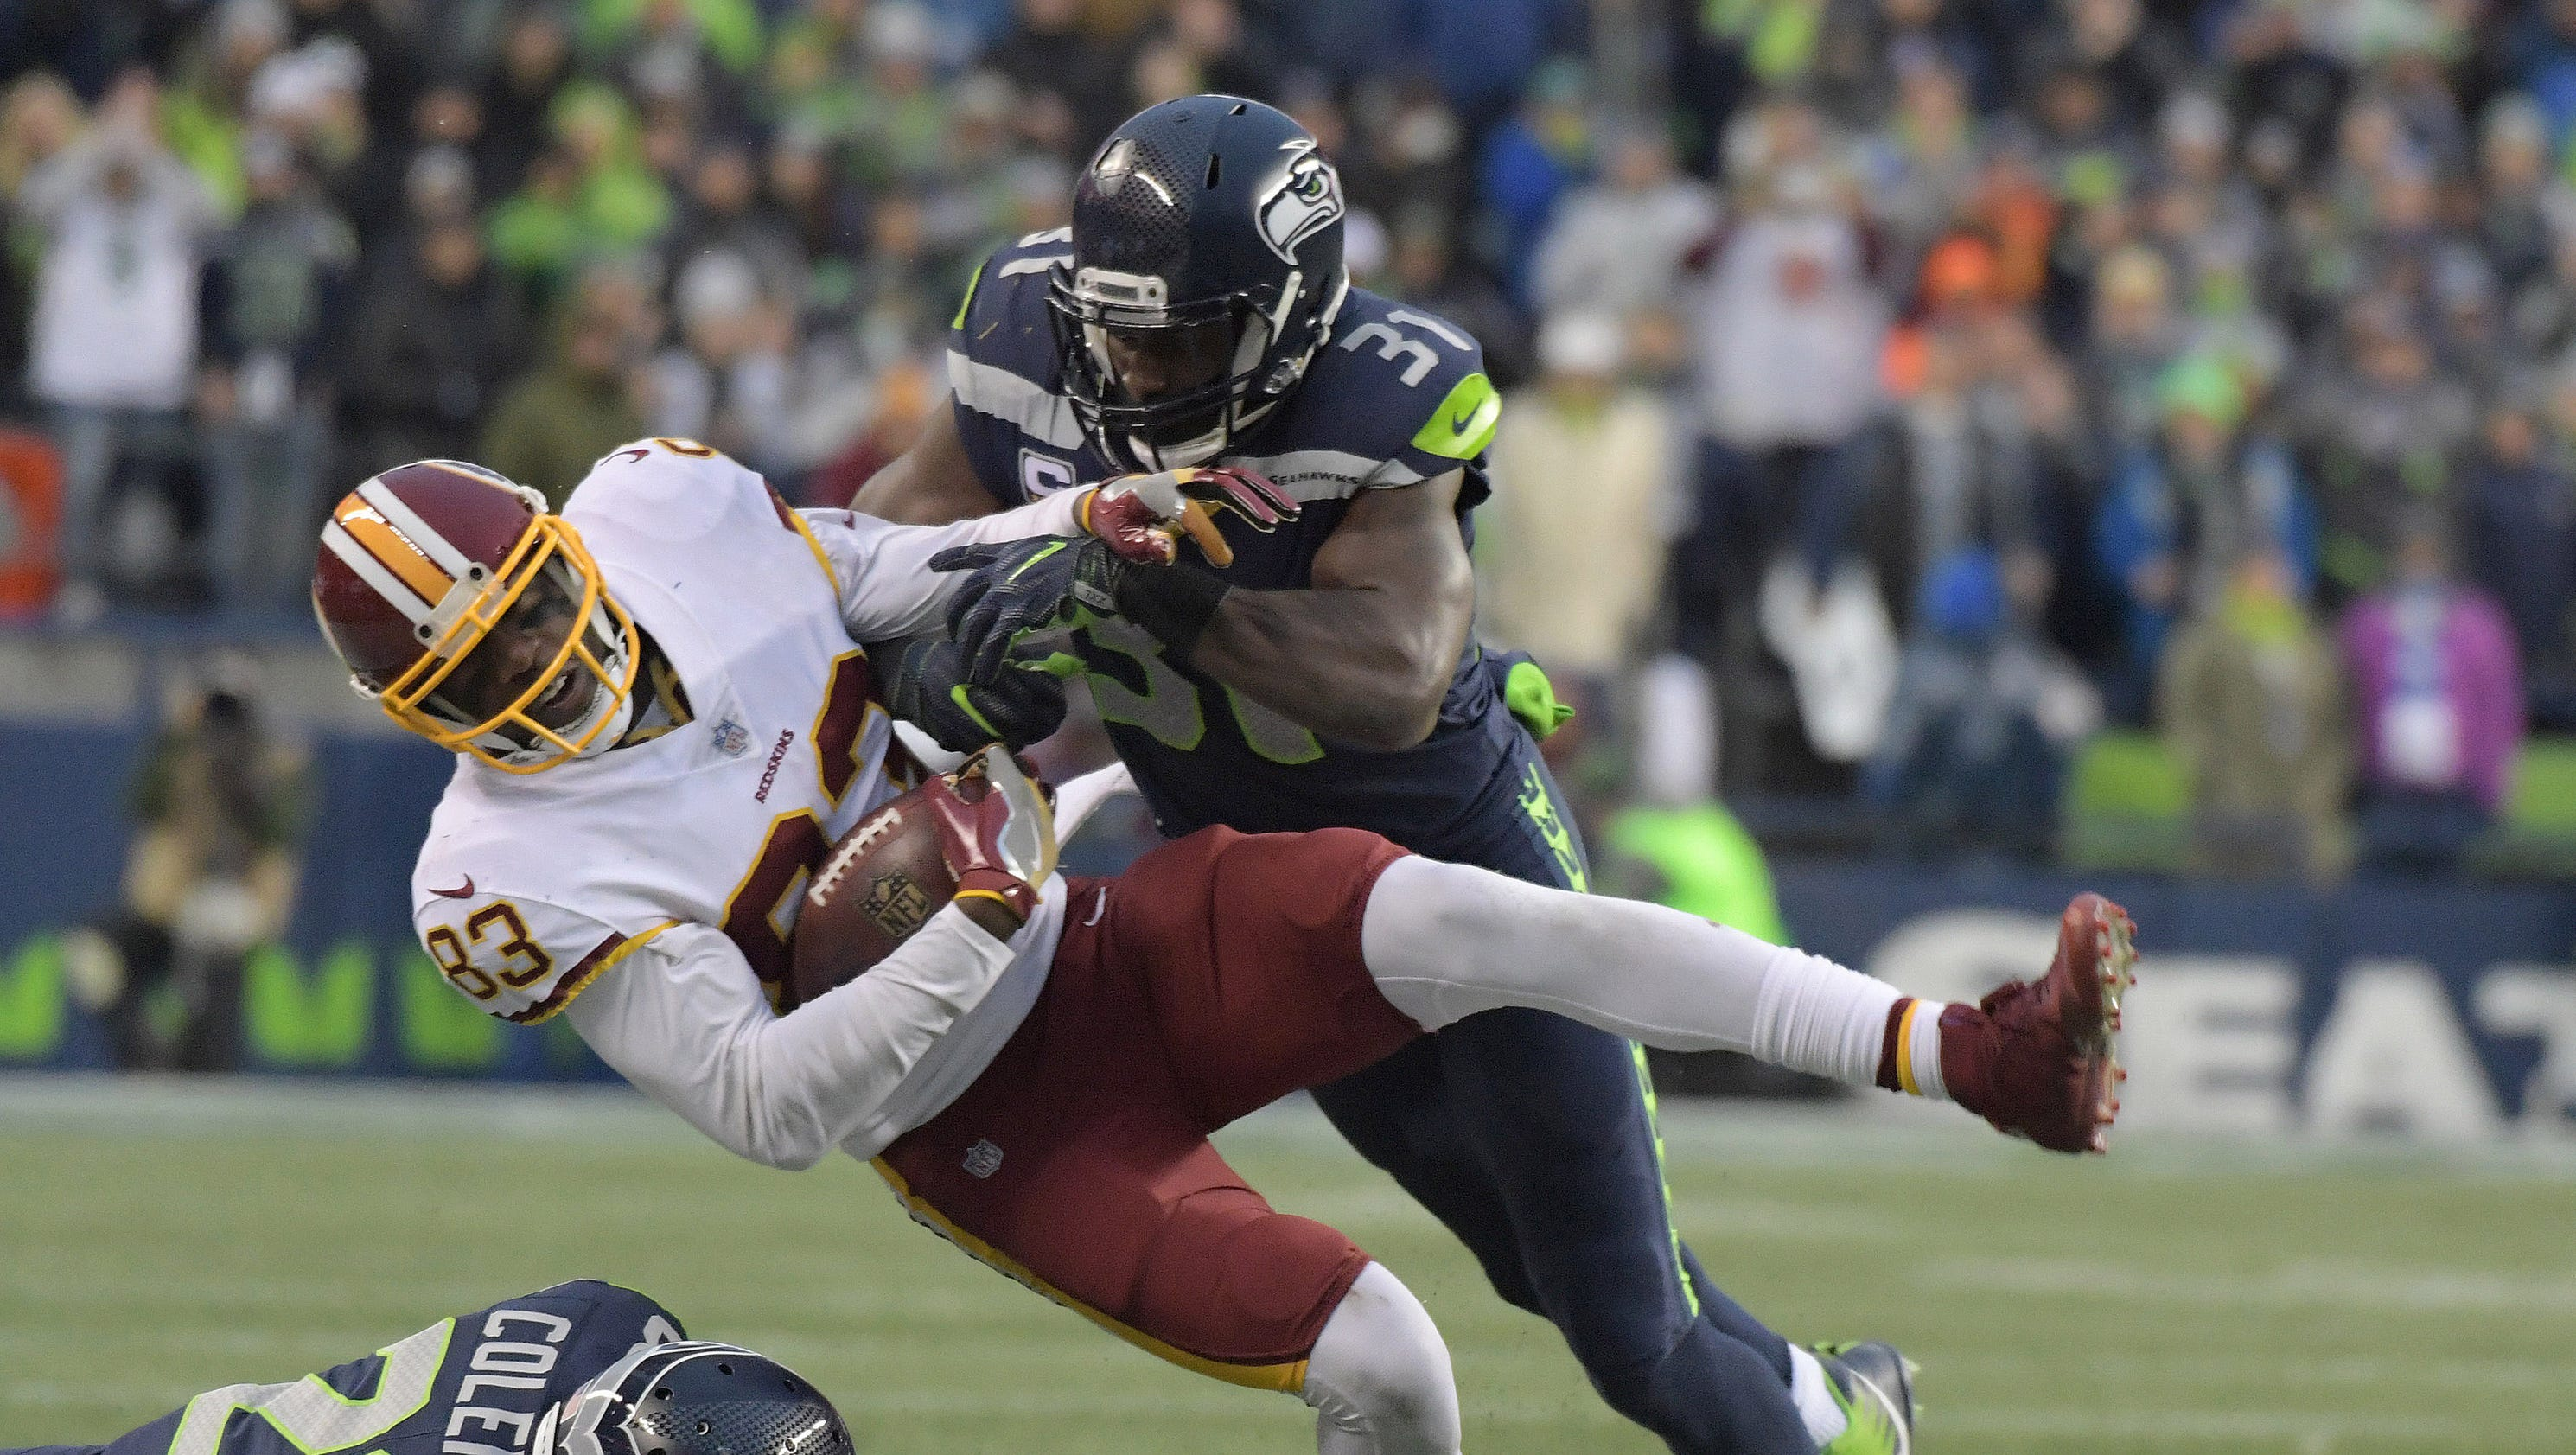 636465978074531130-usp-nfl-washington-redskins-at-seattle-seahawks-95120247